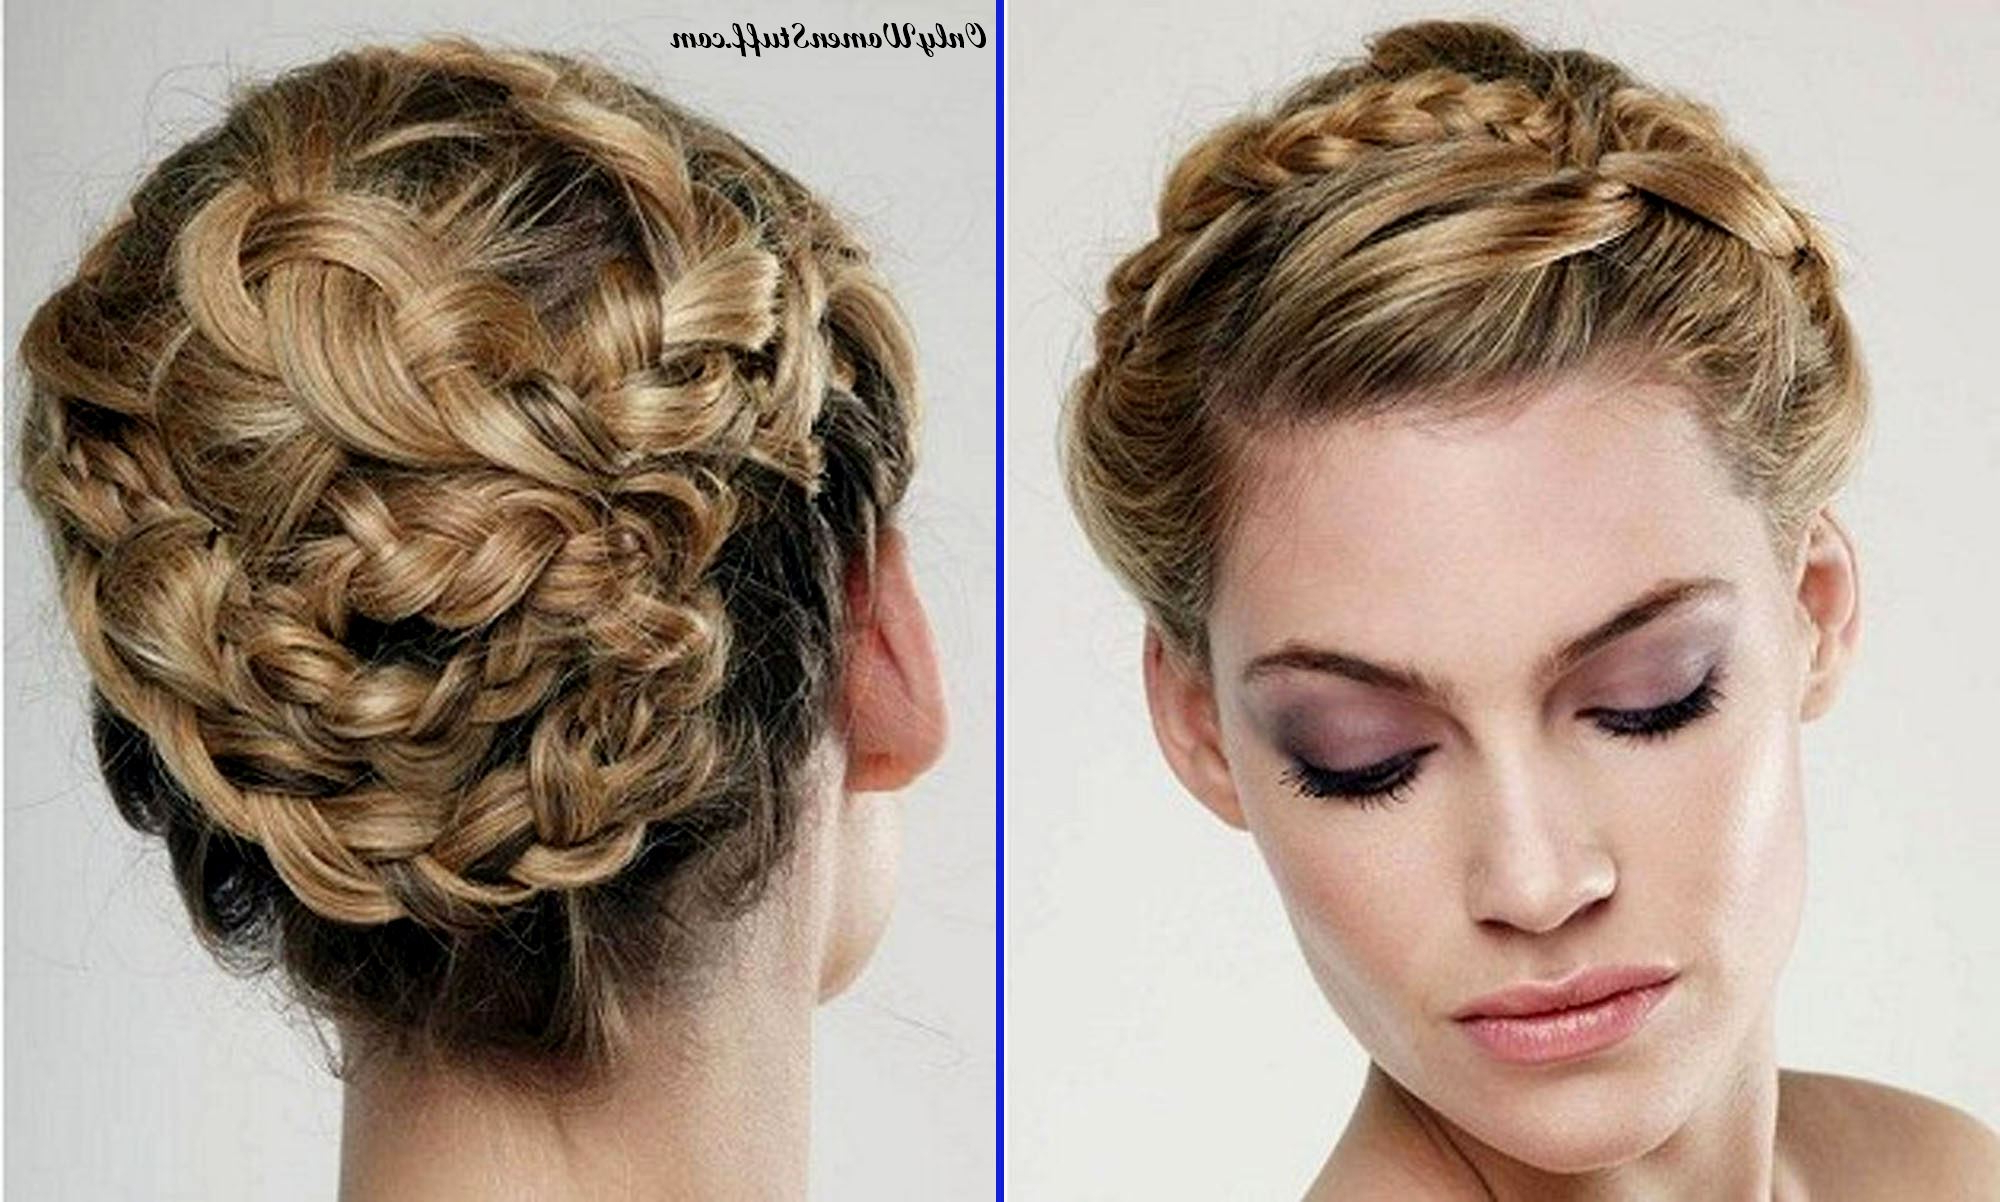 50+ Easy Prom Hairstyles & Updos Ideas (Stepstep) In Cute Hairstyles For Short Hair For Homecoming (View 9 of 25)